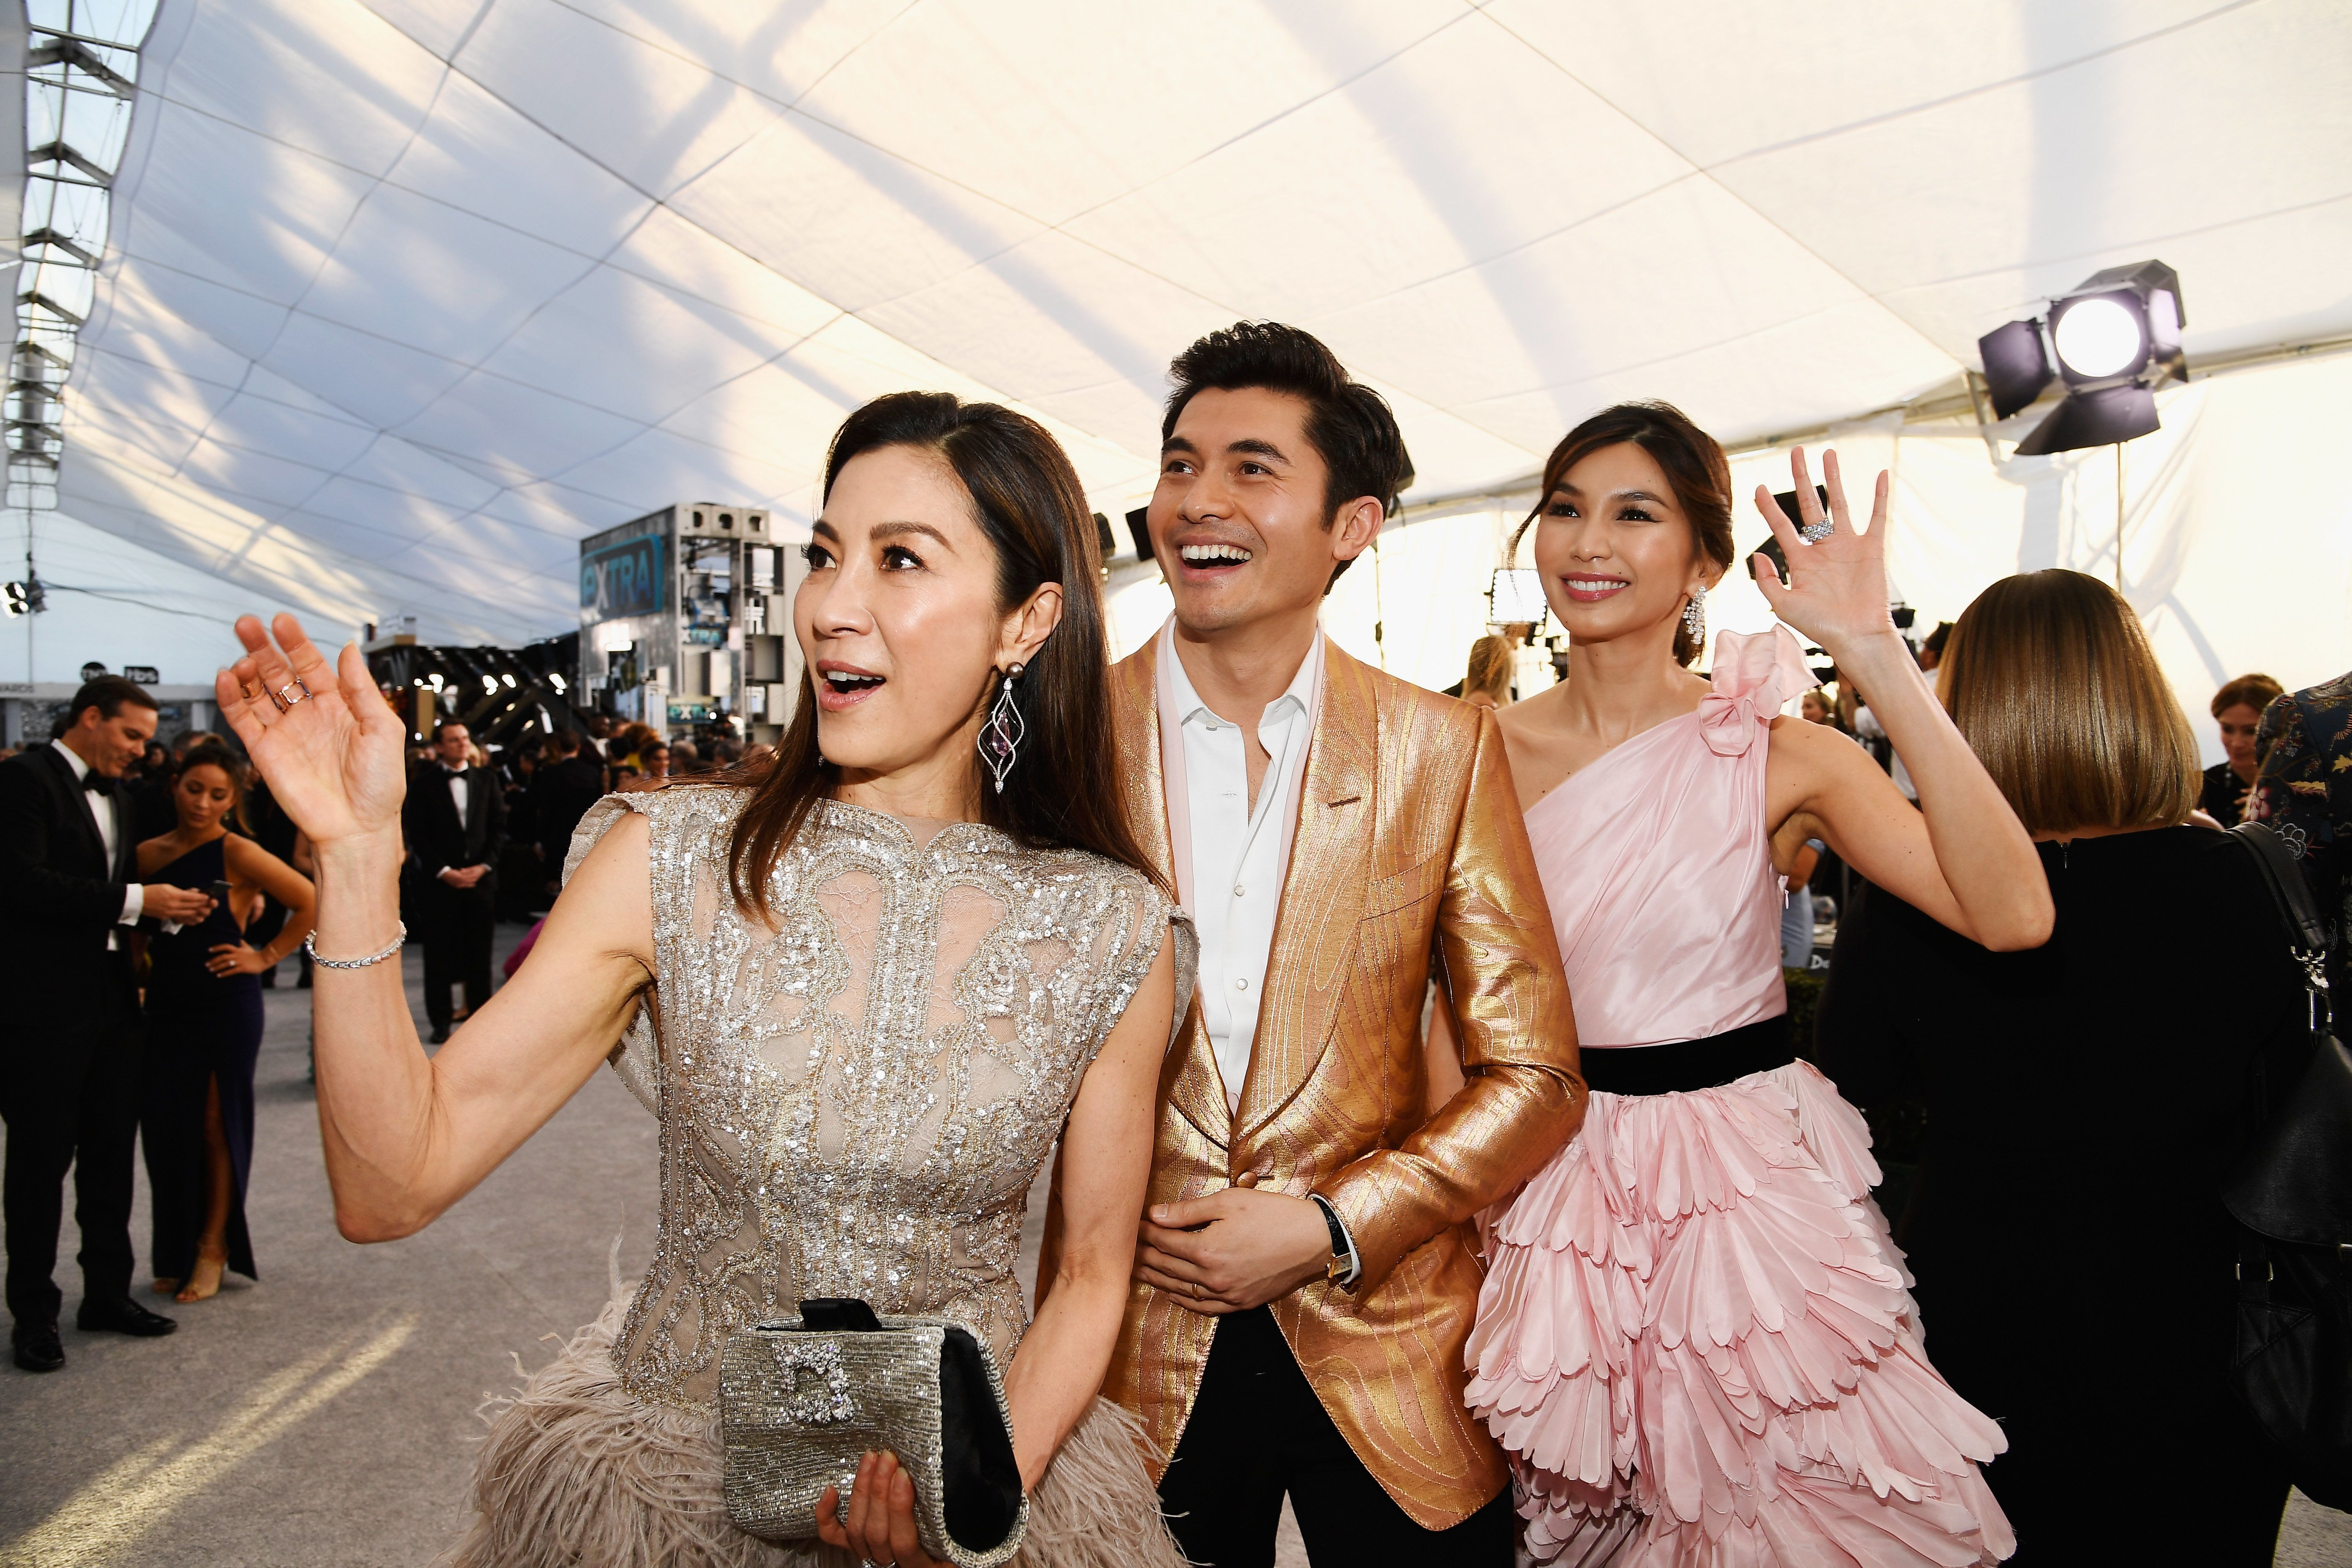 LOS ANGELES, CA - JANUARY 27:  (L-R) Michelle Yeoh, Henry Golding, and Gemma Chan attend the 25th Annual Screen Actors Guild Awards at The Shrine Auditorium on January 27, 2019 in Los Angeles, California.  (Photo by Kevork Djansezian/Getty Images)